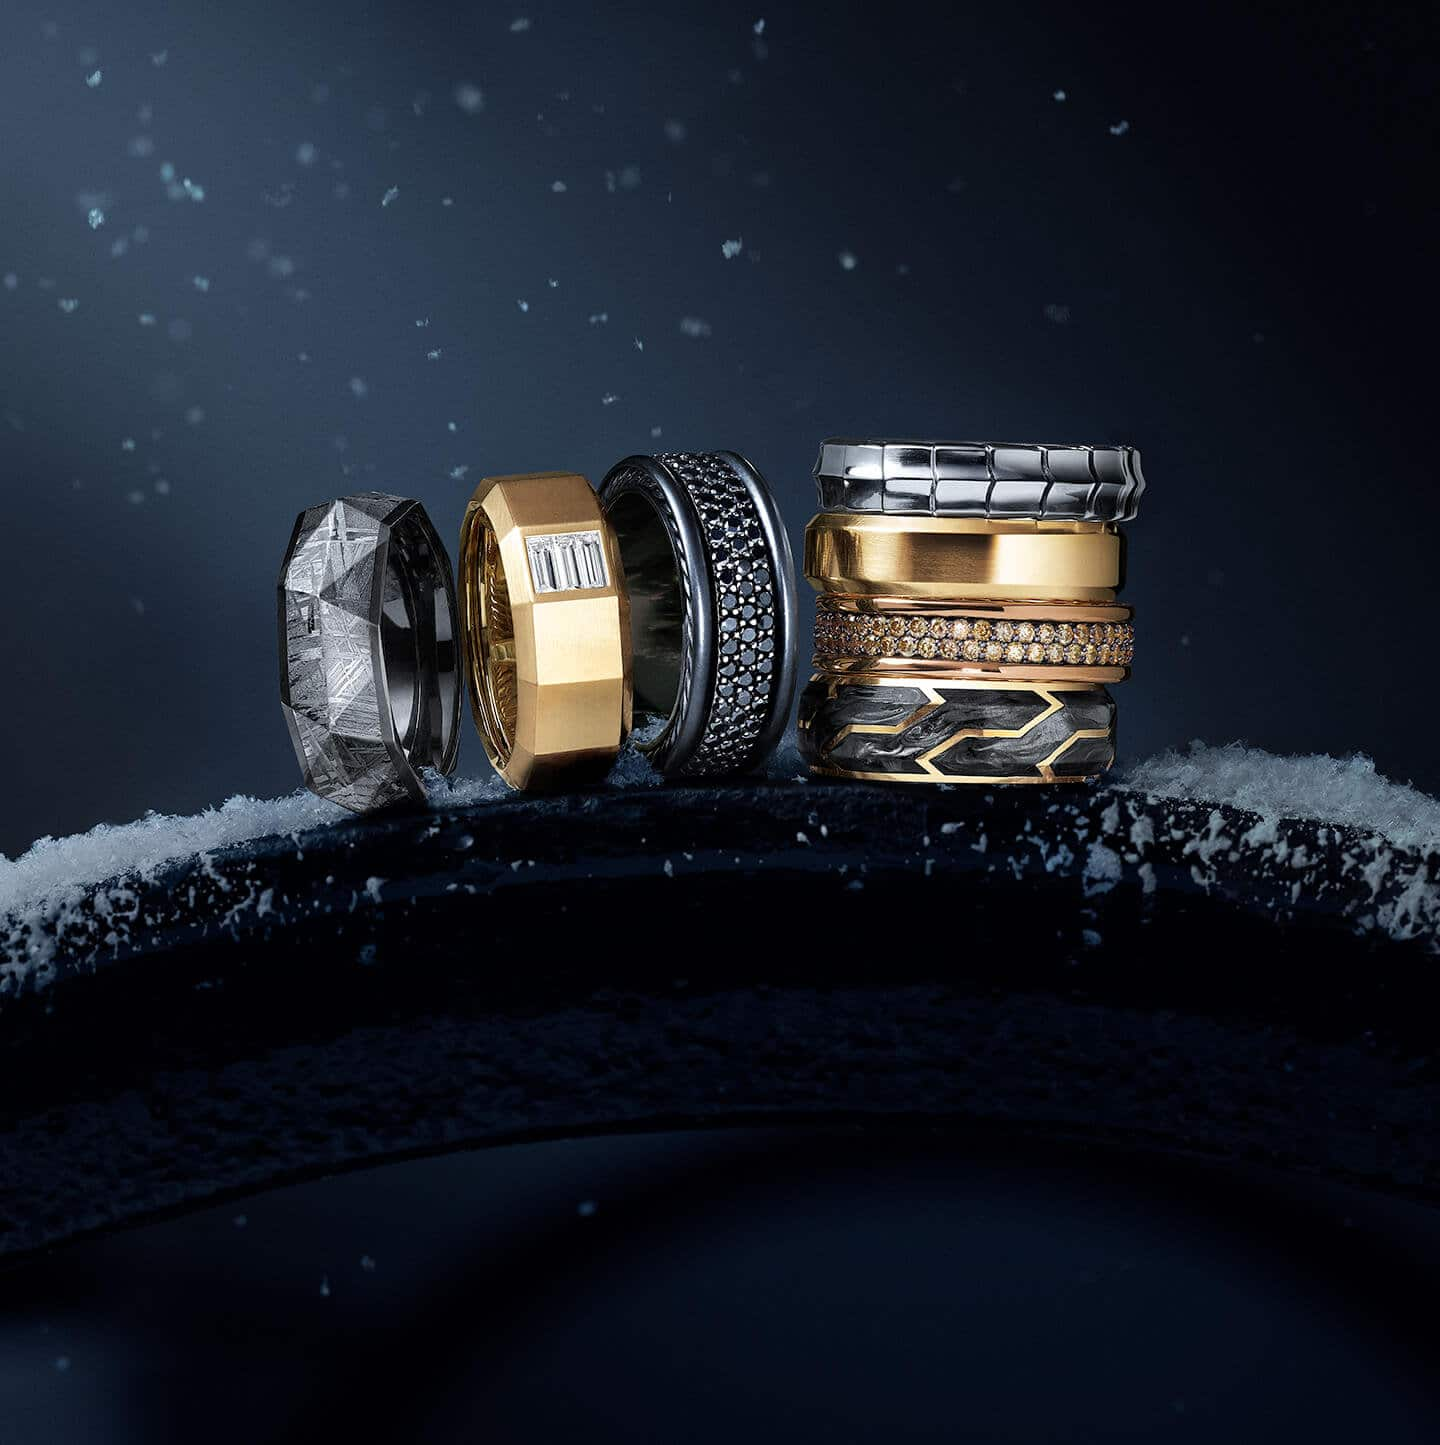 A color photograph shows a horizontal stack of three David Yurman Men's band rings atop a snow-dusted metal ledge at night. Next to the rings are a stack of four David Yurman Men's band rings. The jewelry is crafted from meteorite with black titanium, 18K yellow gold with baguette white diamonds, black titanium with pavé black diamonds and sterling silver, 18K white gold, 18K yellow gold, 18K rose gold with pavé cognac diamonds or forged carbon with 18K yellow gold.